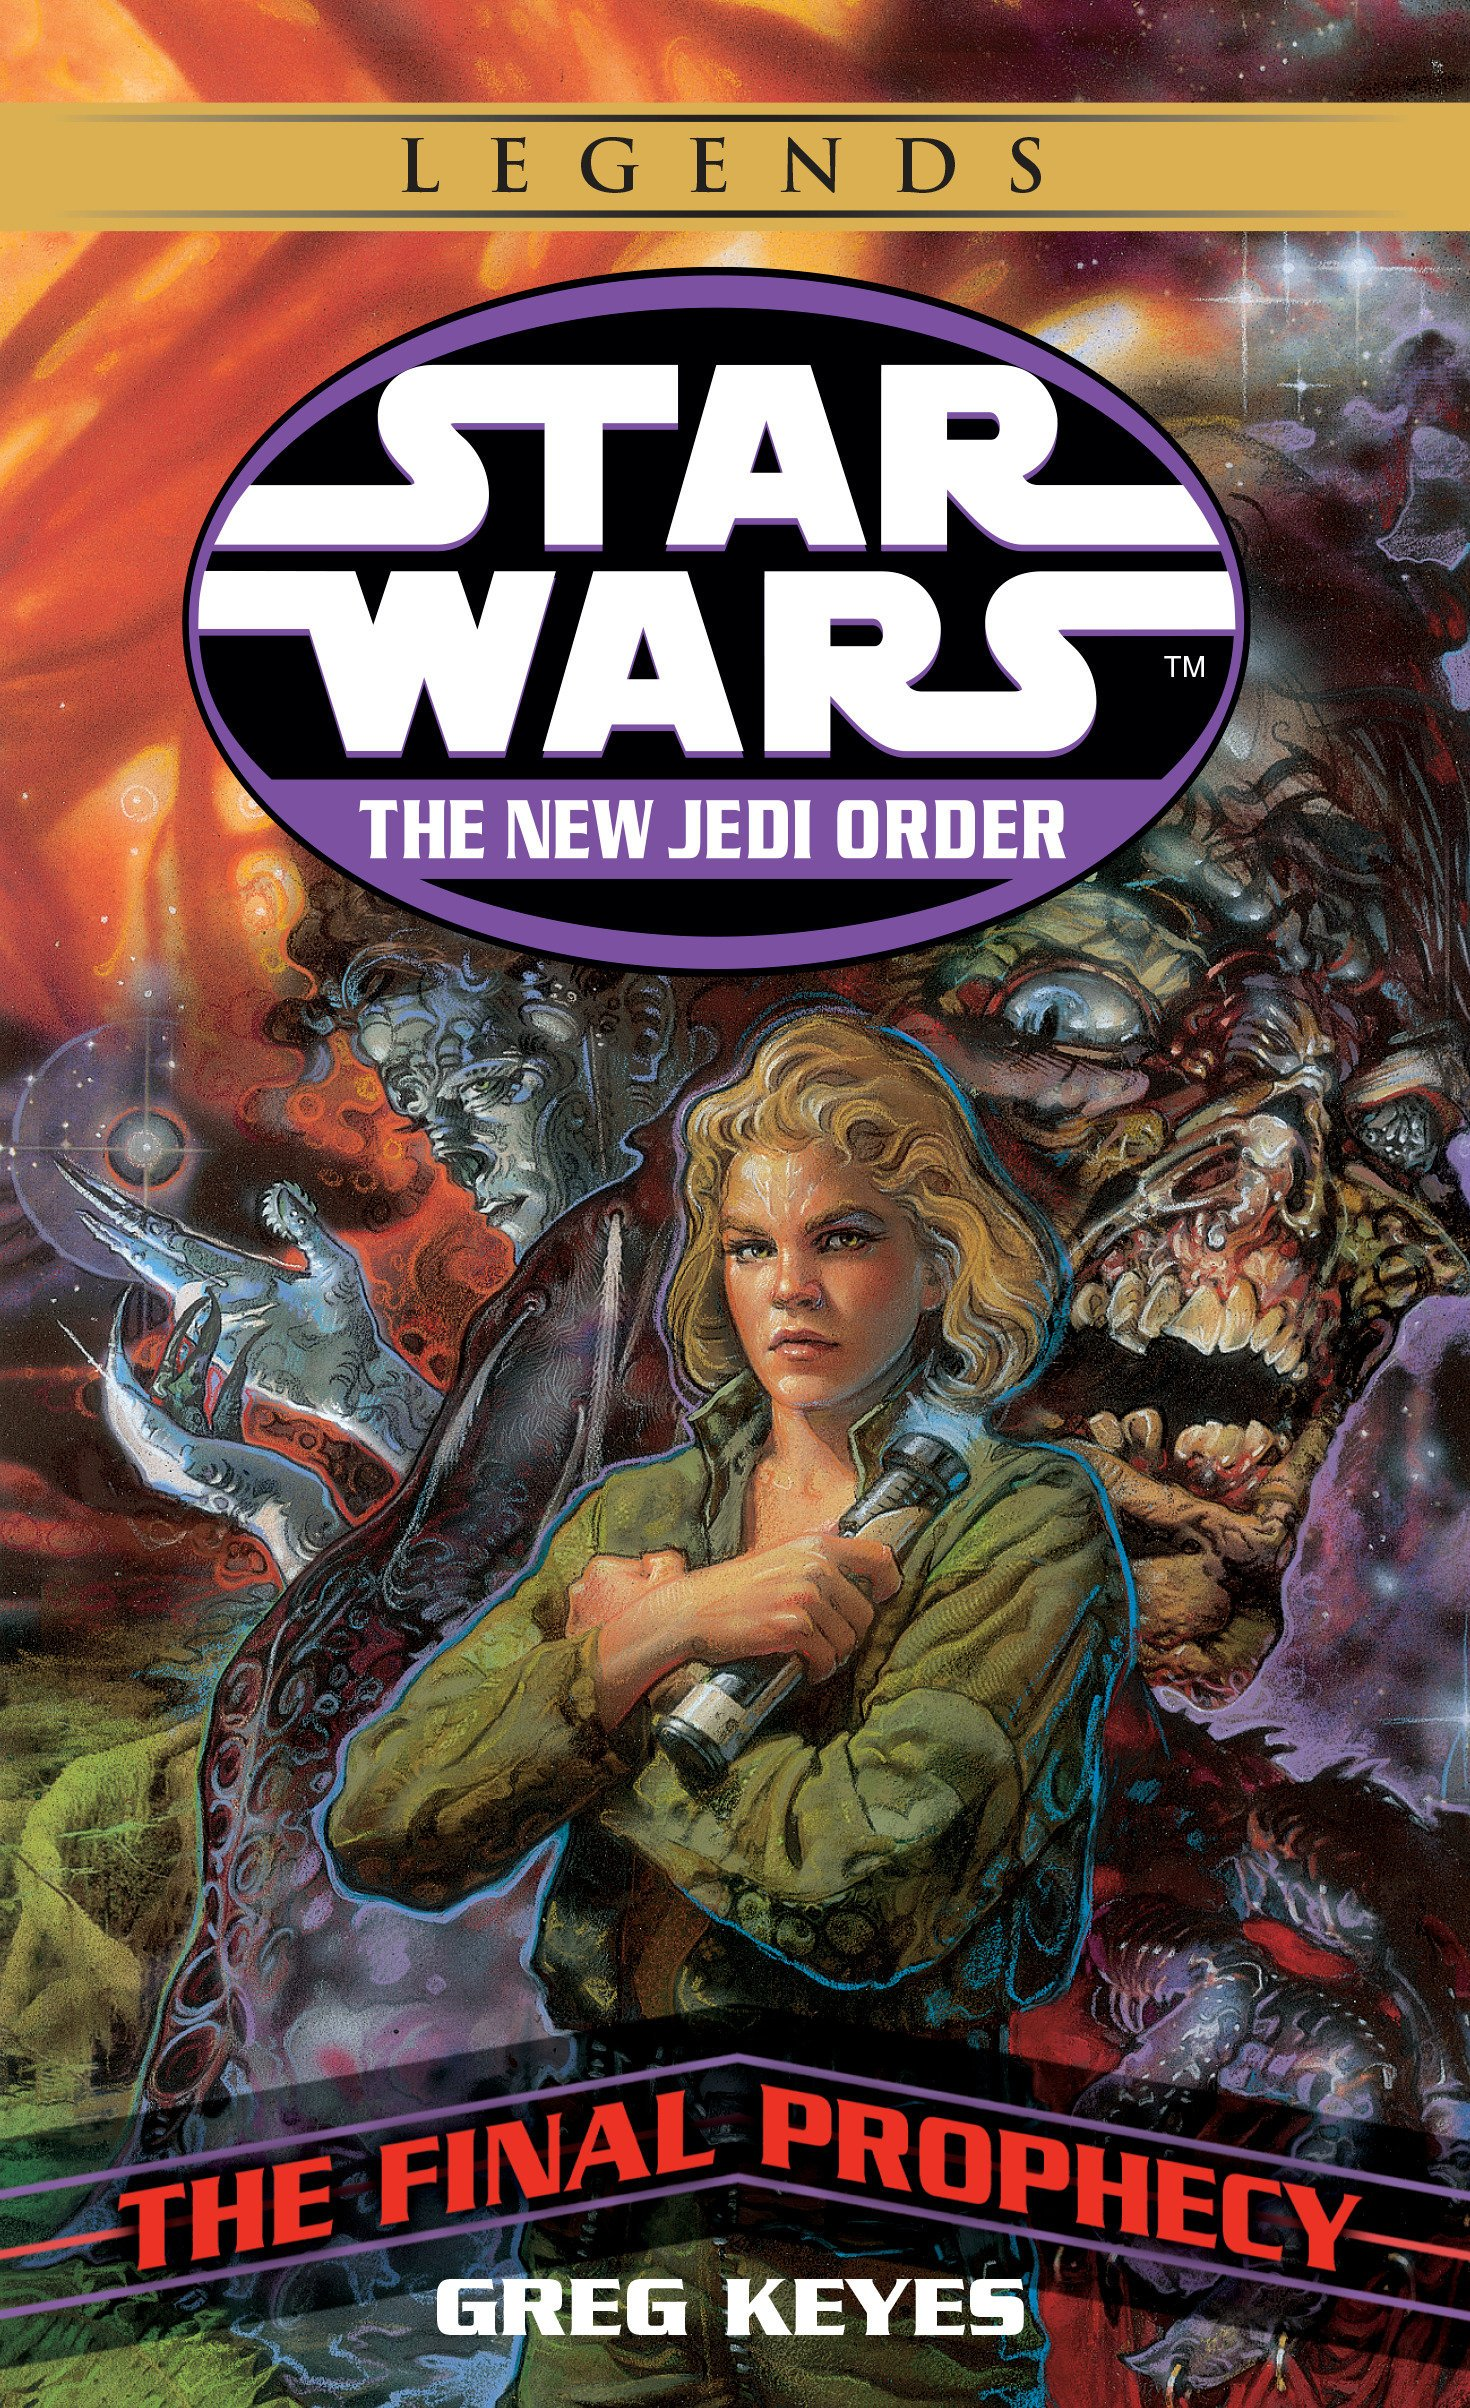 The Final Prophecy  Star Wars Legends  The New Jedi Order   Star Wars  The New Jedi Order   Legends Band 18